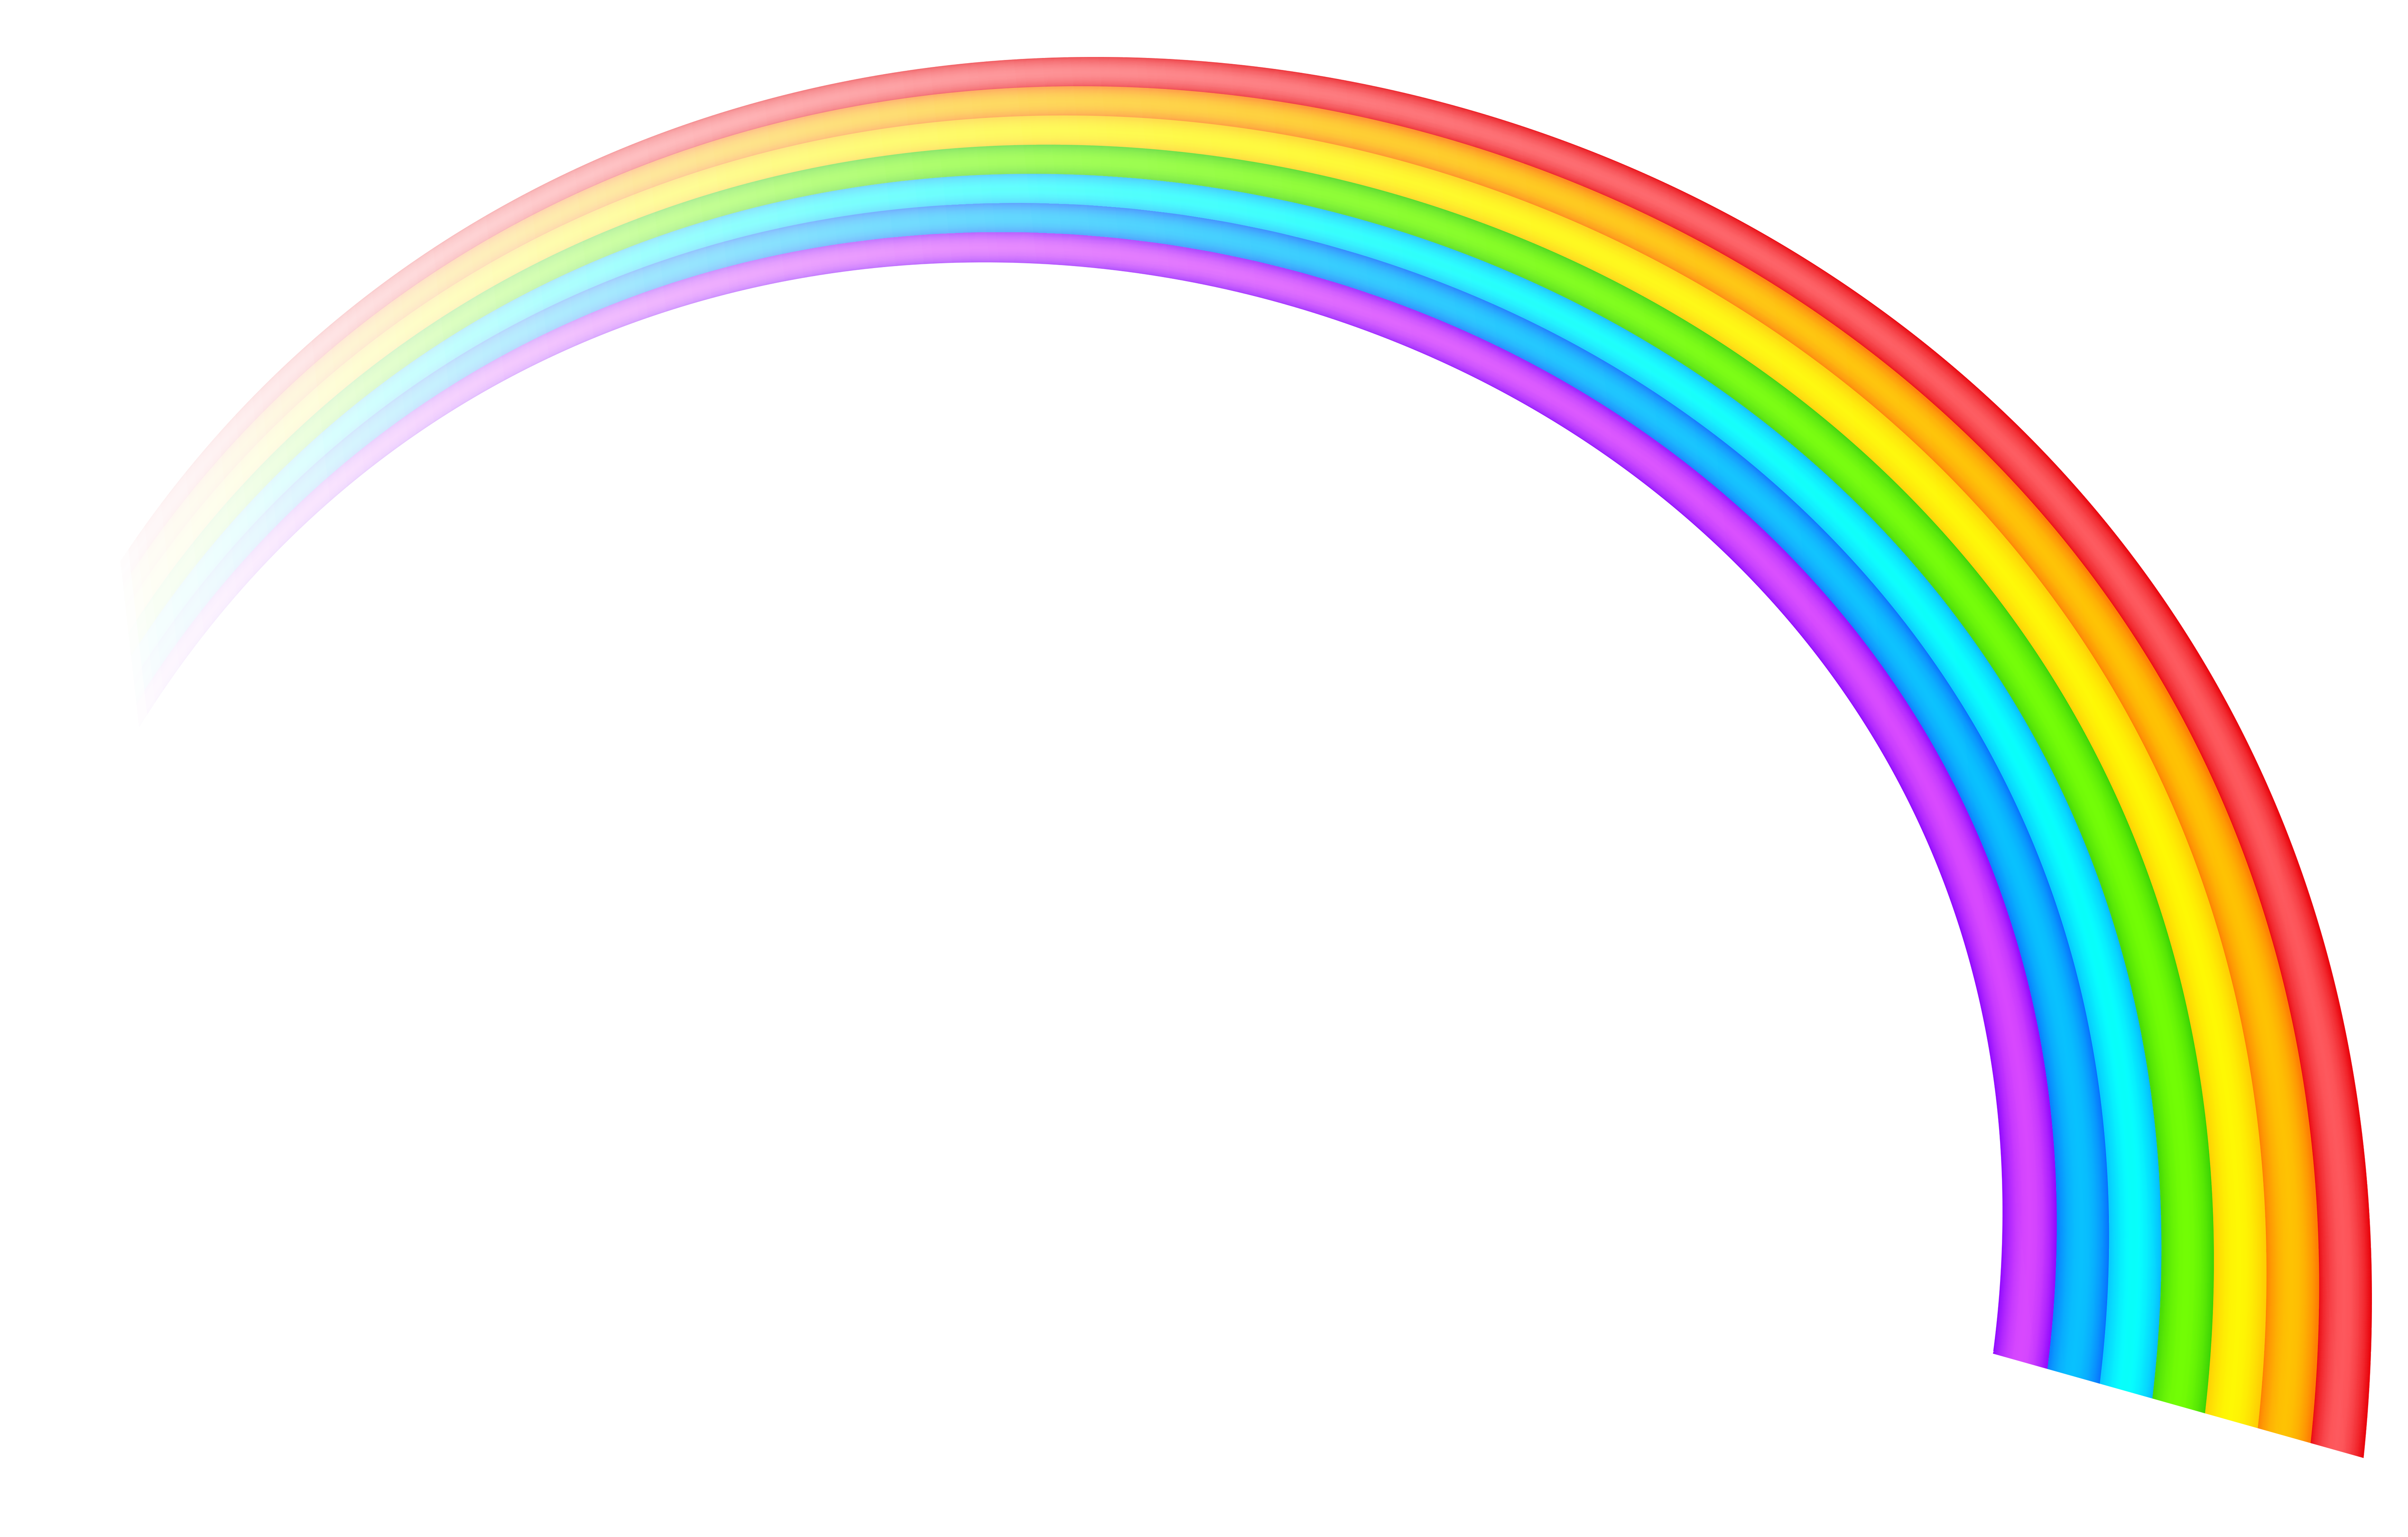 Rainbow Clipart Transparent Background - Rainbow Transparent Clipart Picture | Gallery Yopriceville - High ...